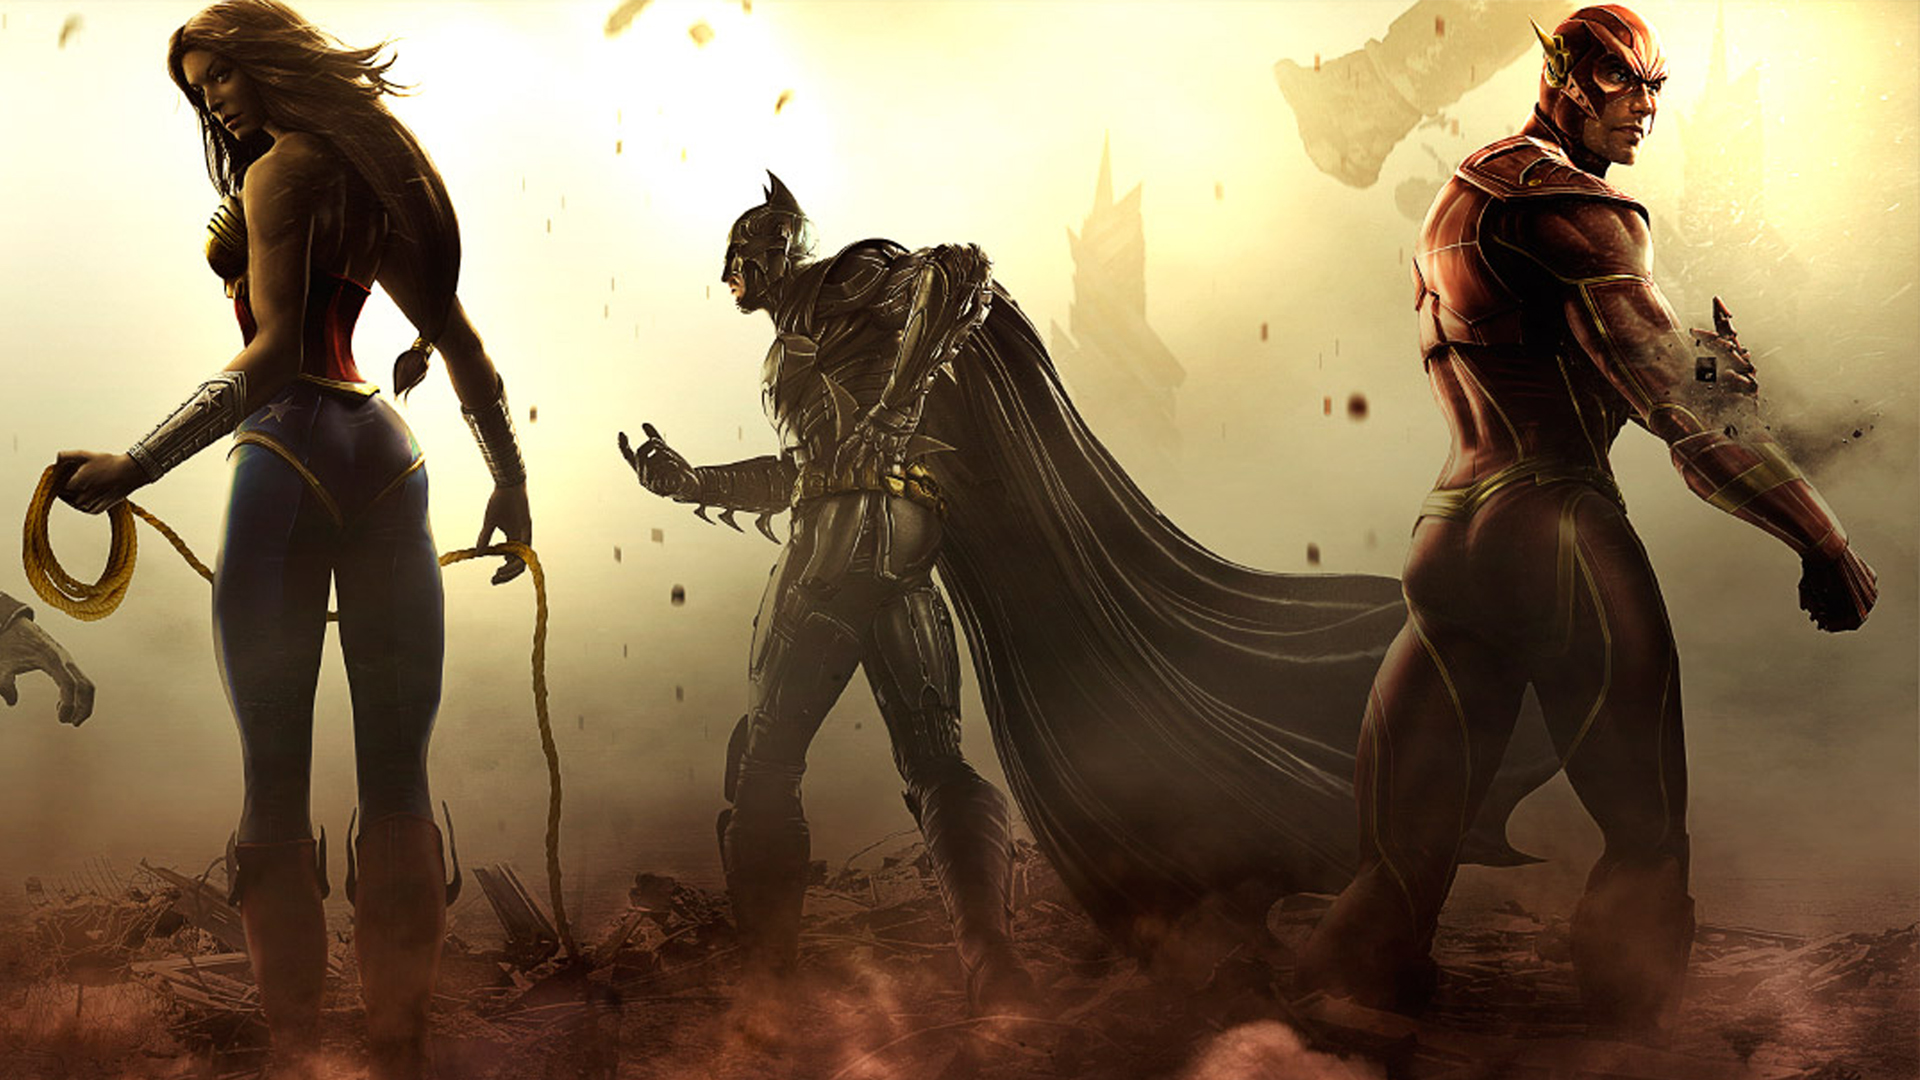 Injustice: Gods Among Us Sequel Rumoured For 2017